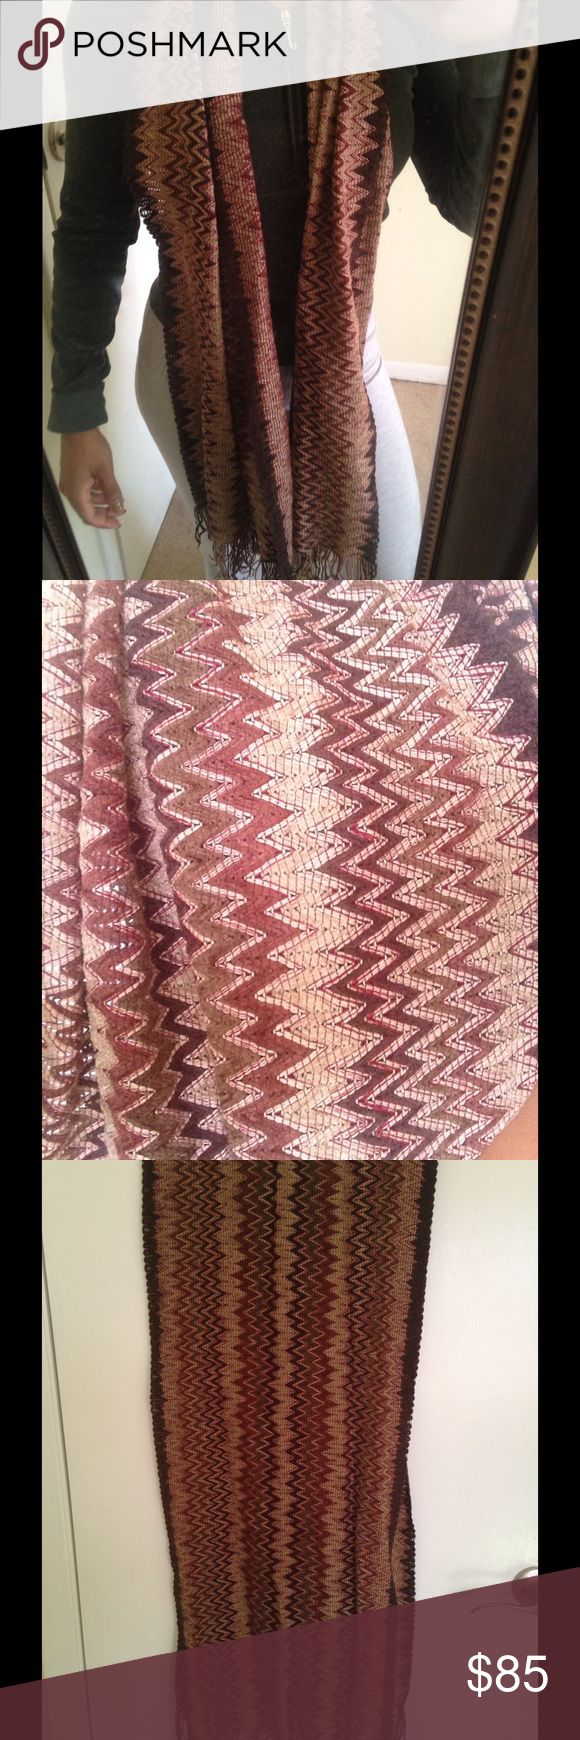 Authentic Missoni Scarf Authentic Missoni scarf bought from Newman Marcus last call. The colors on the scarf are various Browns with a pop of a deep pink and green. This scarf pairs well with any of the colors listed above. This scarf is the perfect winter accessory. I paid 149 for this scarf and have only used it once with my outerwear for an event. I am open to any reasonable offers. Missoni Accessories Scarves & Wraps